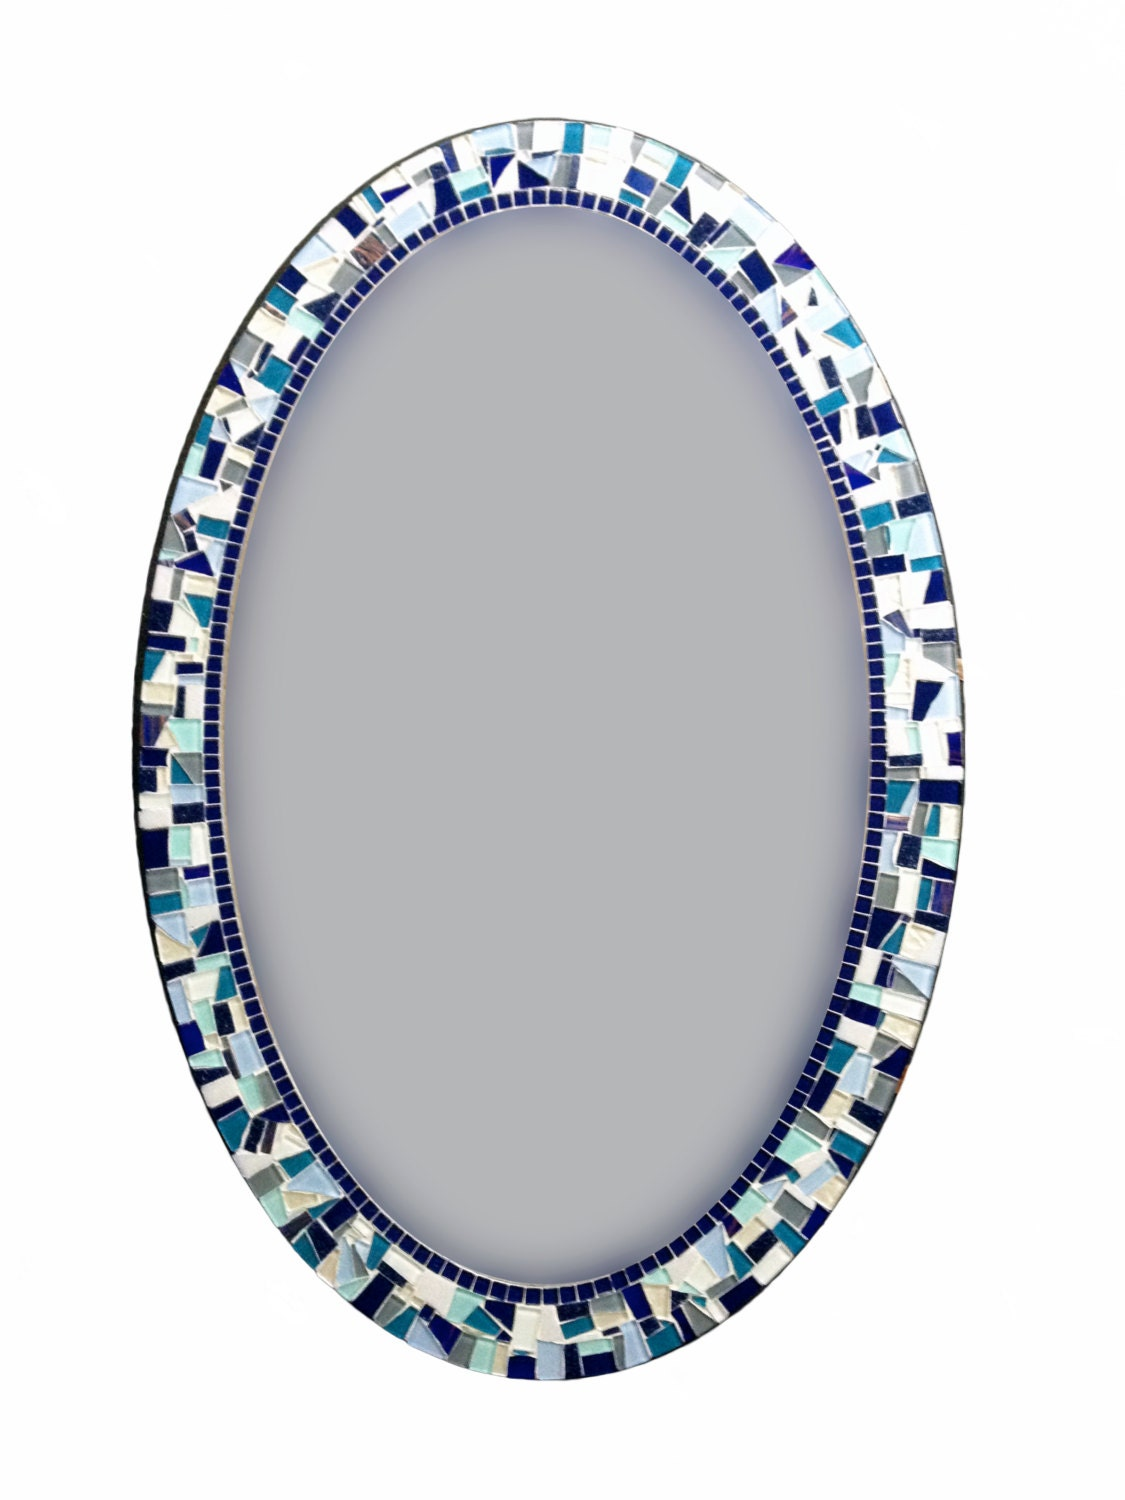 Large oval mosaic mirror navy blue white aqua ready to for Mosaic mirror